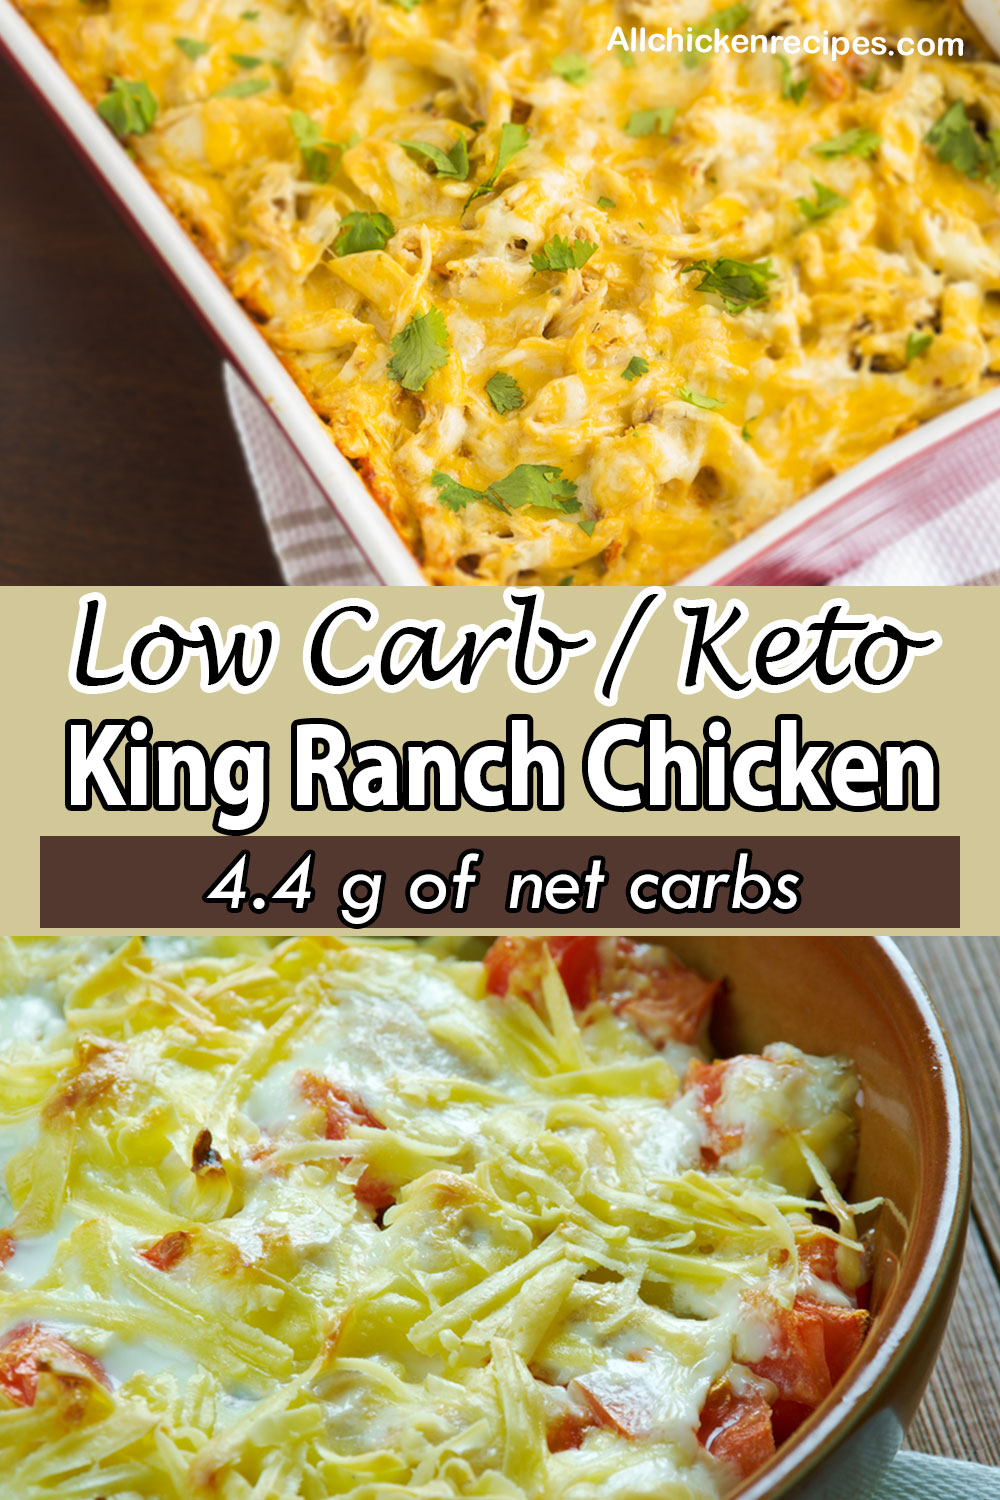 low carb keto King Ranch Chicken casserole